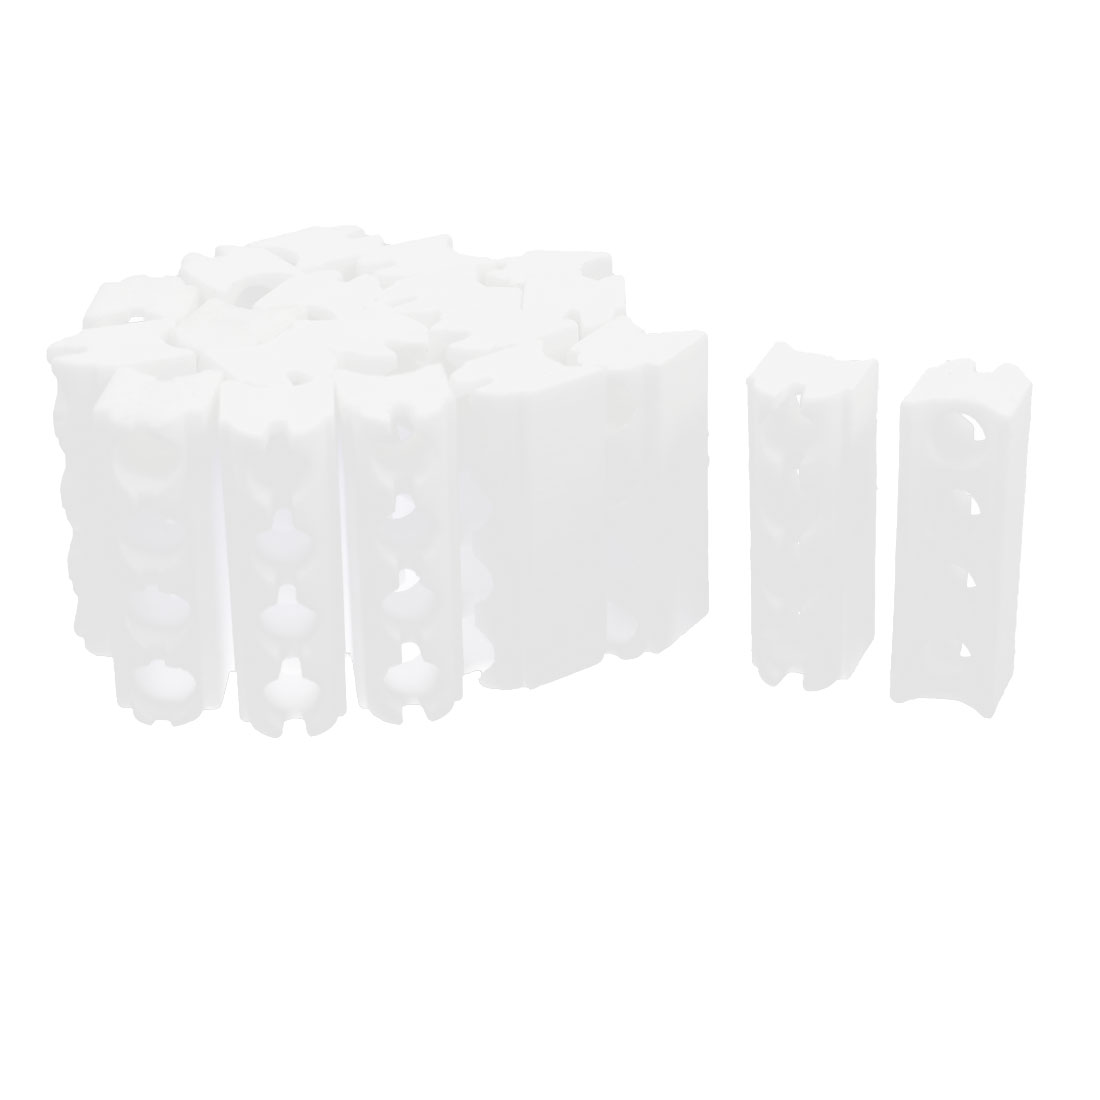 20pcs White 4 Position Insulated Insulation Ceramic for Heating Element